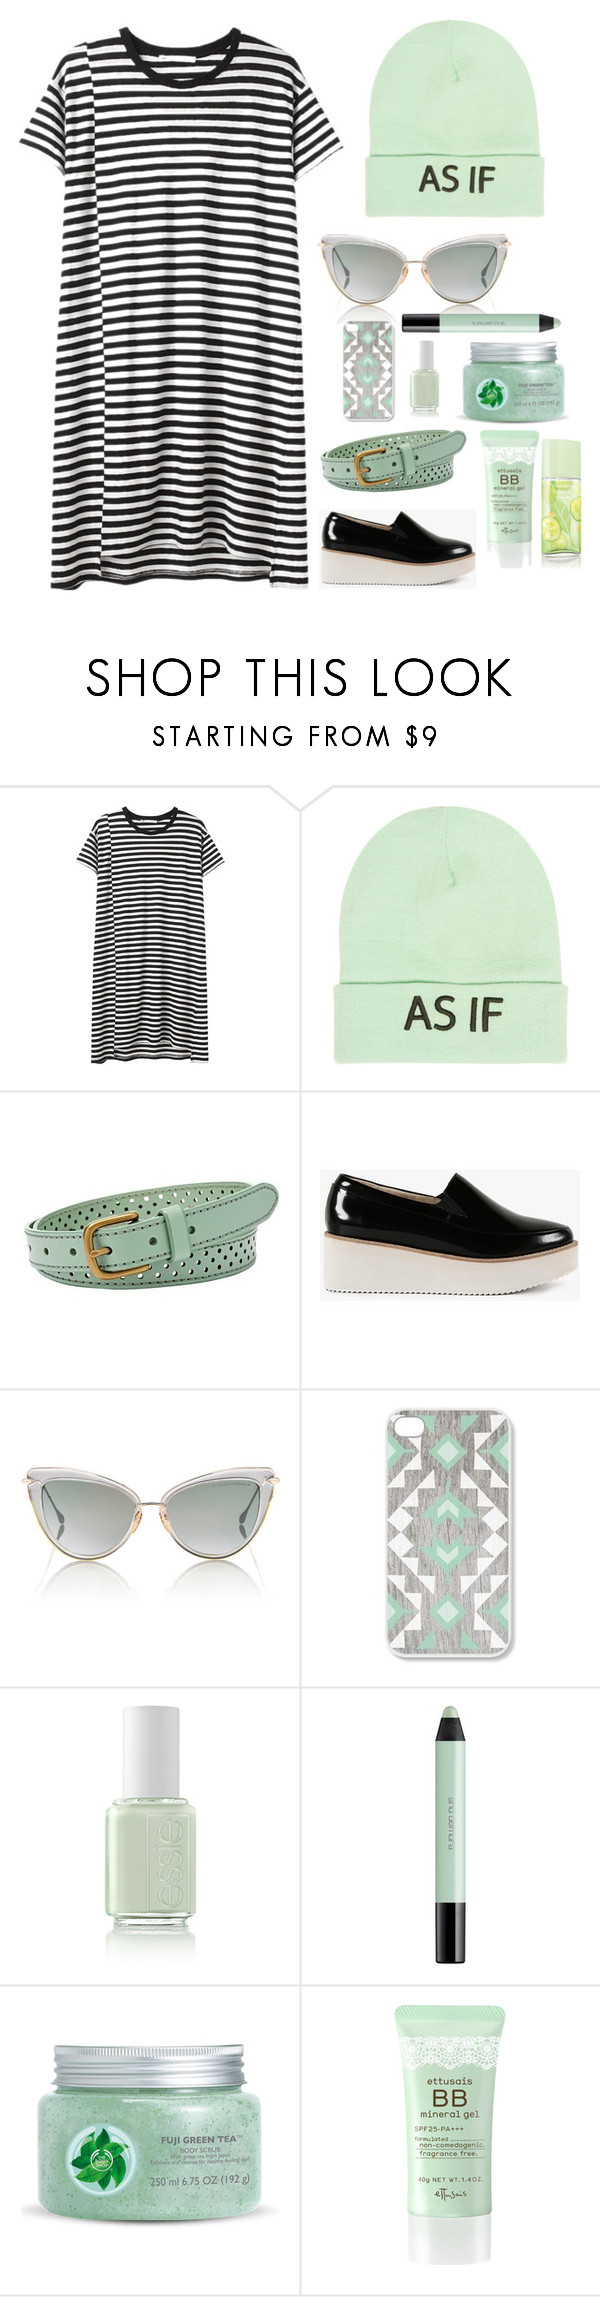 """""""I love Mint colour"""" by ificanfly ❤ liked on Polyvore featuring Hope, Wet Seal, FOSSIL, Sol Sana, Dita, shu uemura, Fuji, Elizabeth Arden, women's clothing and women"""